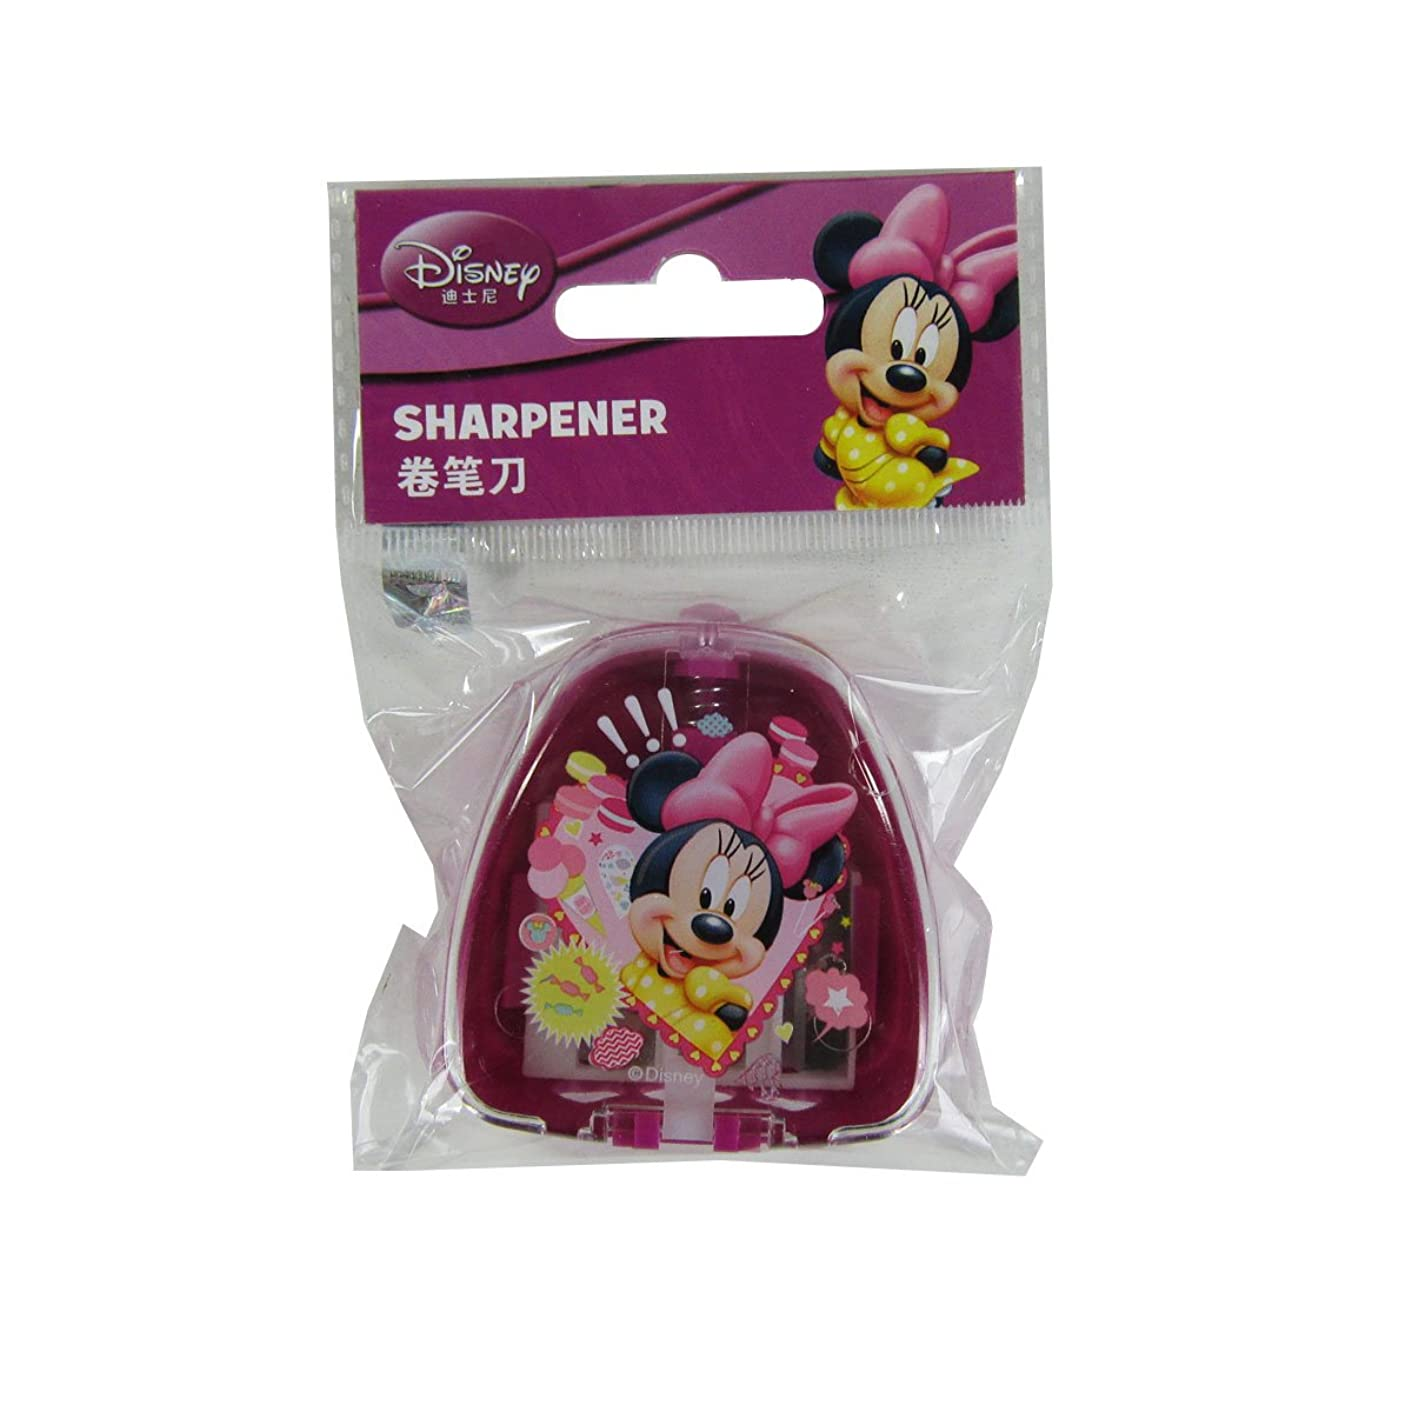 Officially Licensed Three Size Pencil Sharpener - Minnie Mouse